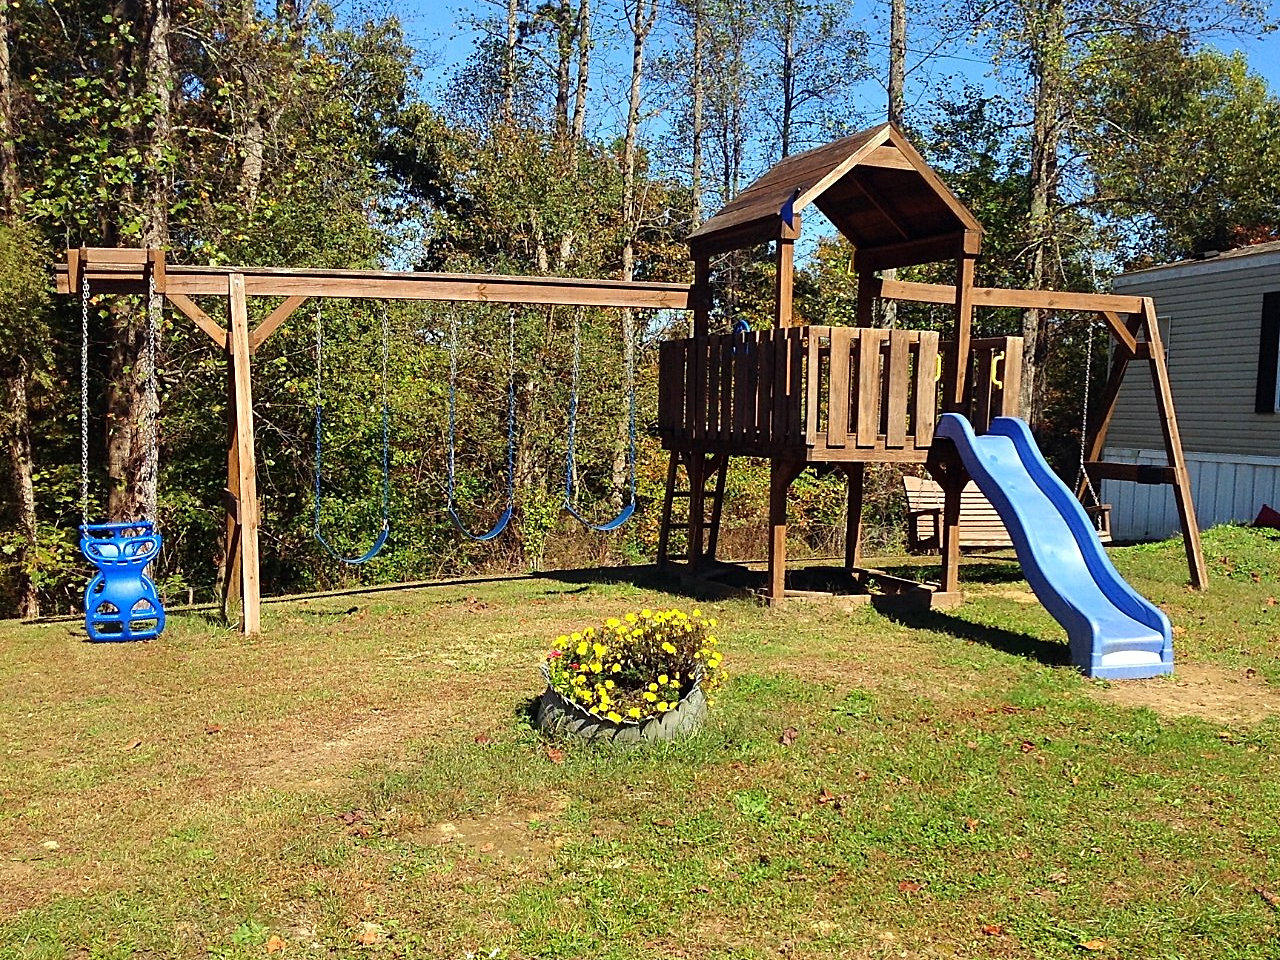 Good Times Play Systems Family Fun 4 Deck Pre Owned